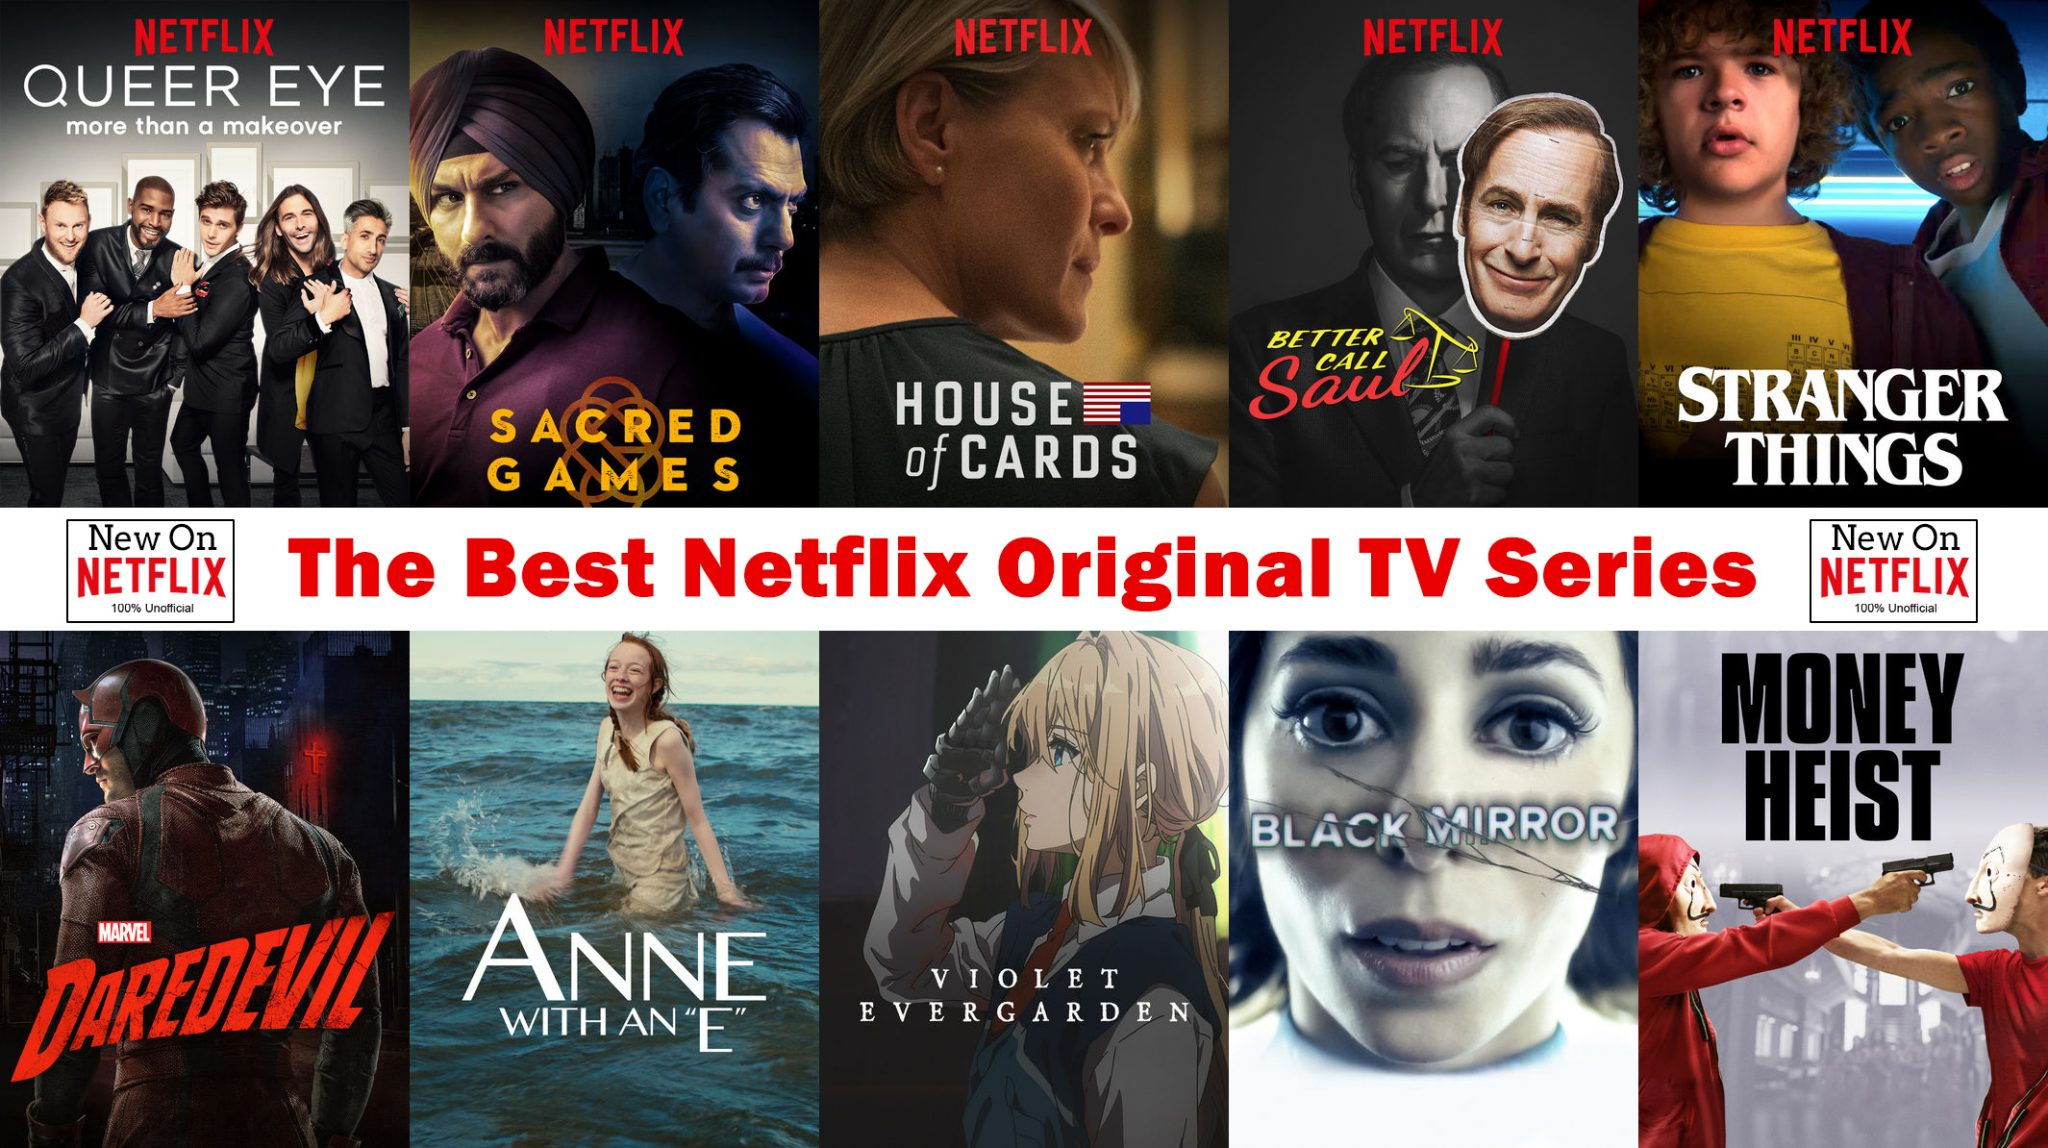 What Are The Best Netflix Original TV Series Right Now? (8th